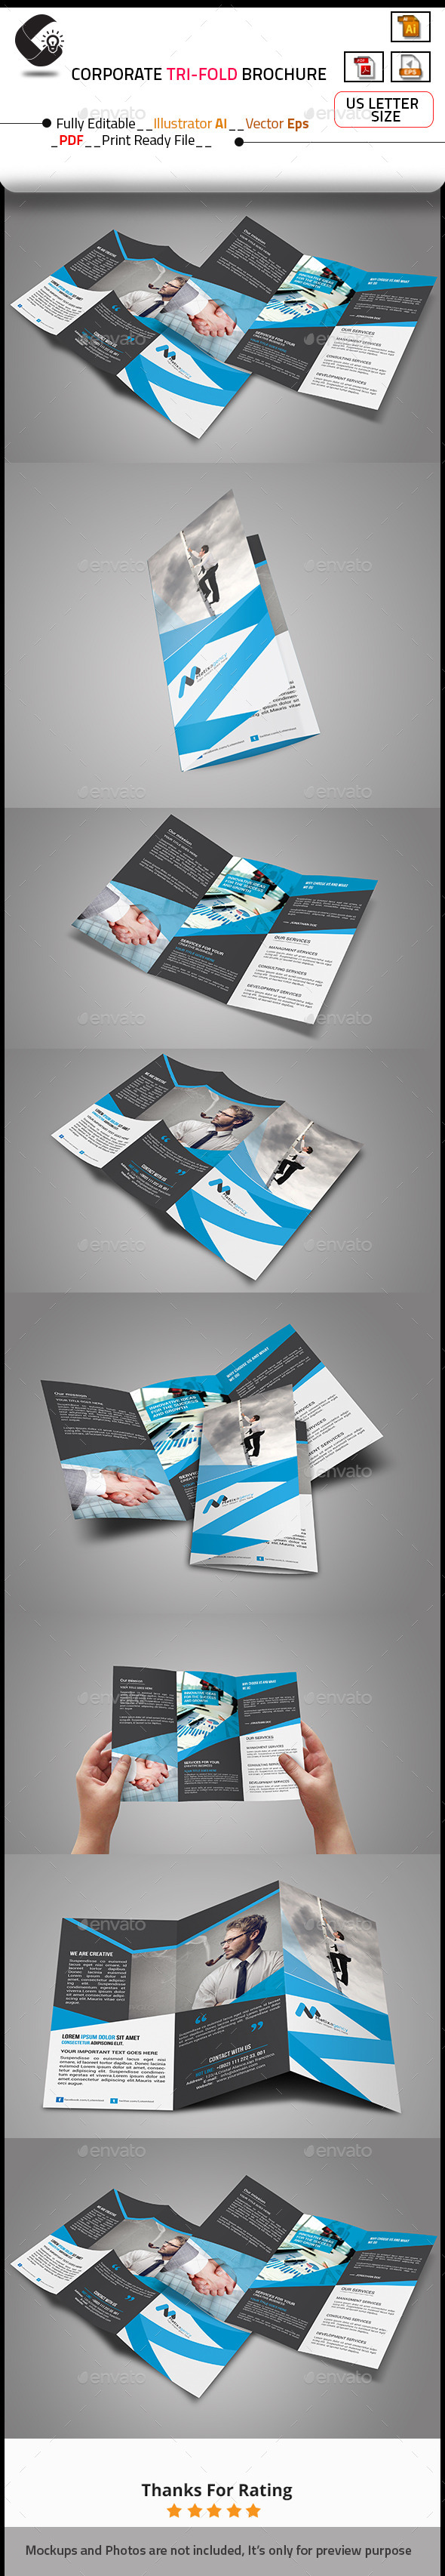 GraphicRiver Tri-Fold Brochure Template 10721503